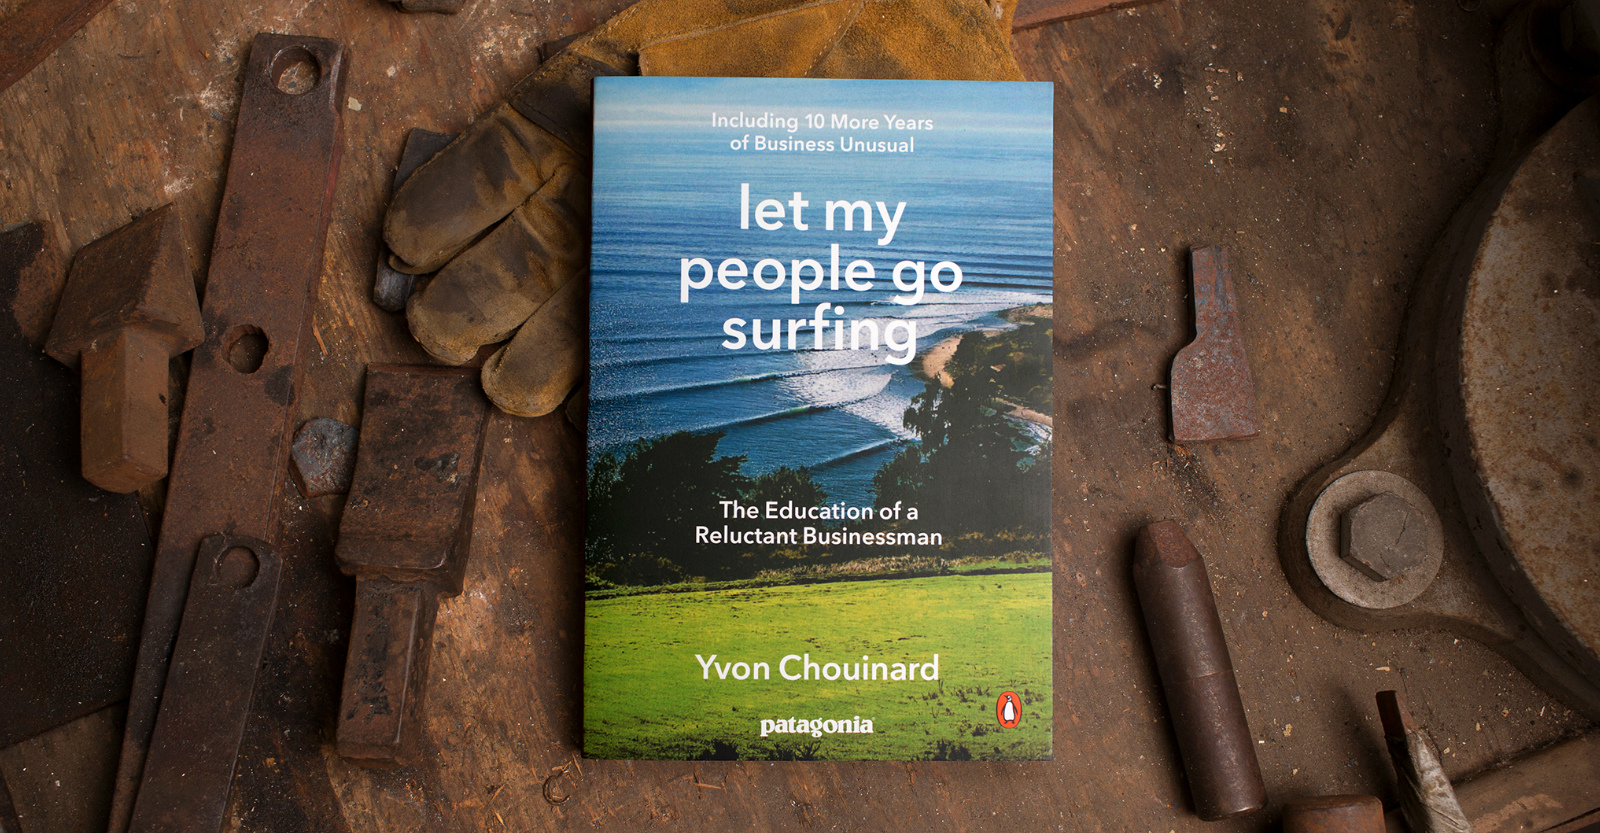 Introducing a New Edition of Yvon Chouinard&20;s